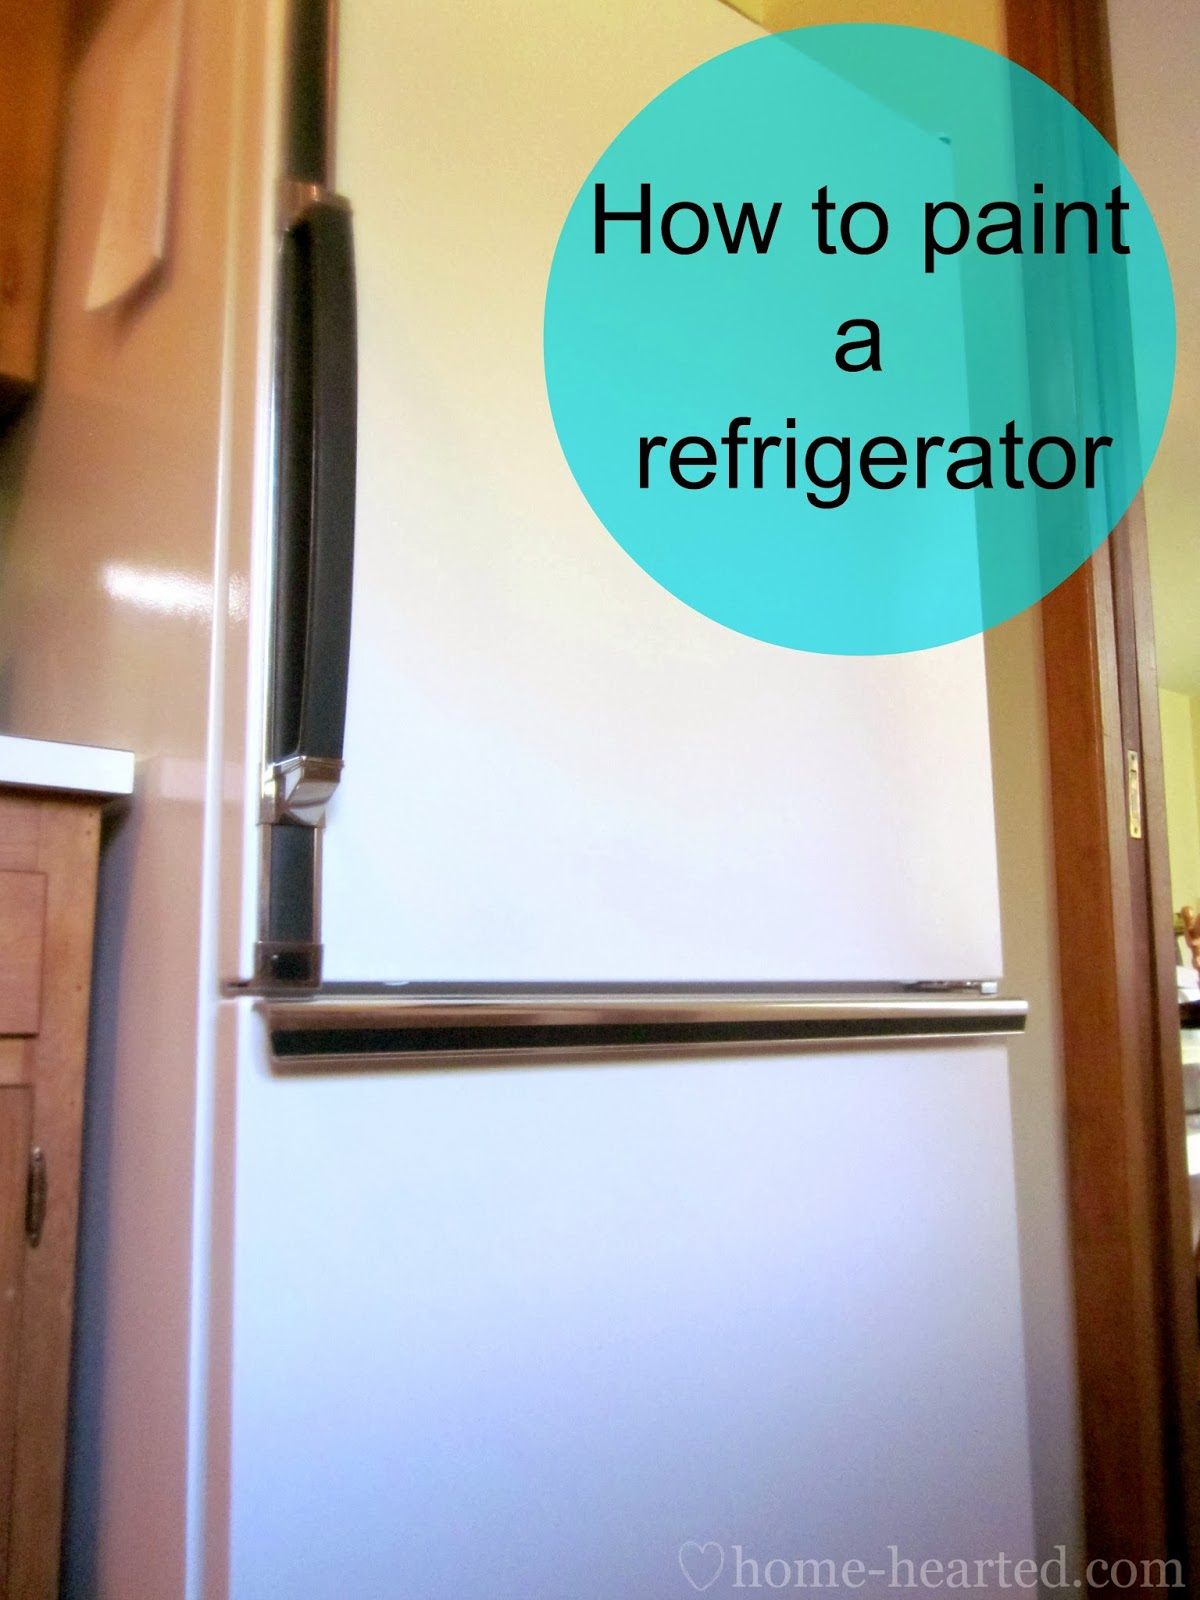 refrigerator paint. how to paint a refrigerator